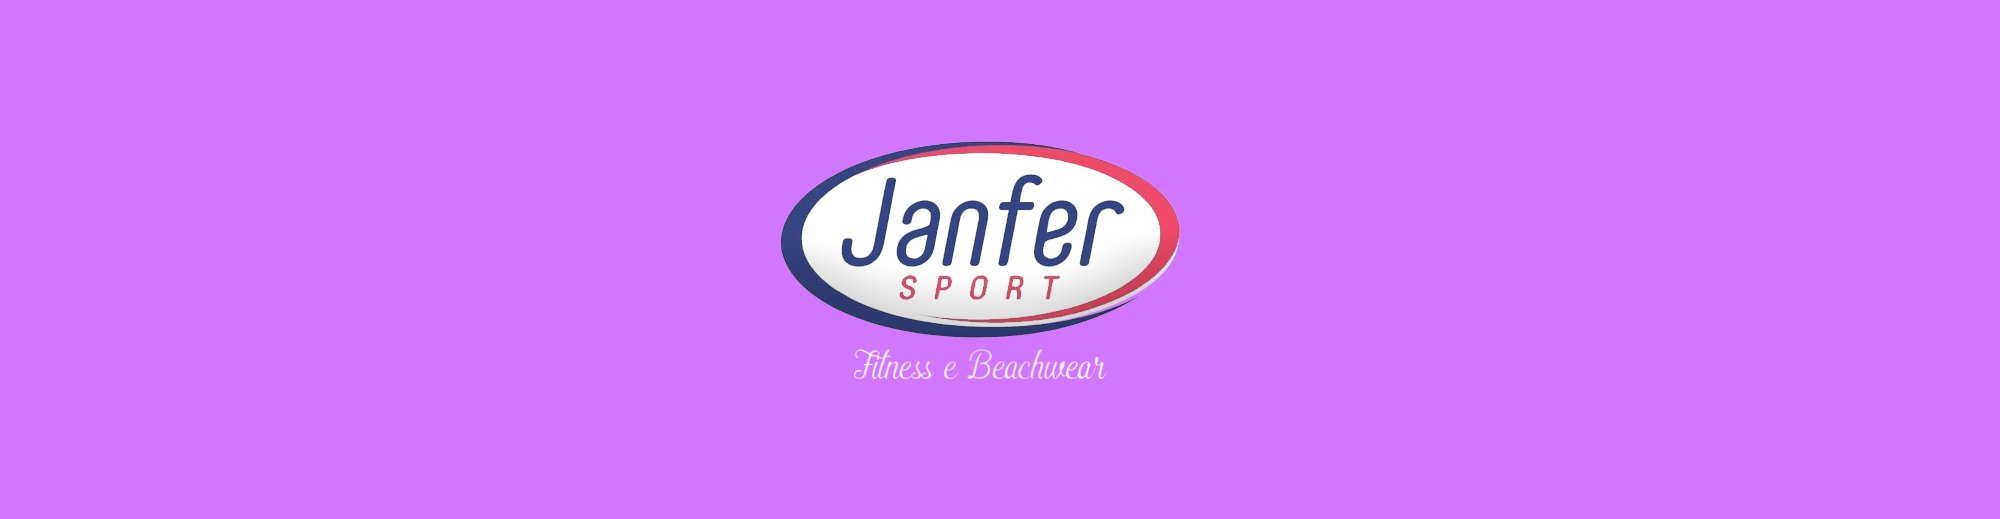 janfer-sports-moda-fitness-atacado-brusque-sc.jpg1